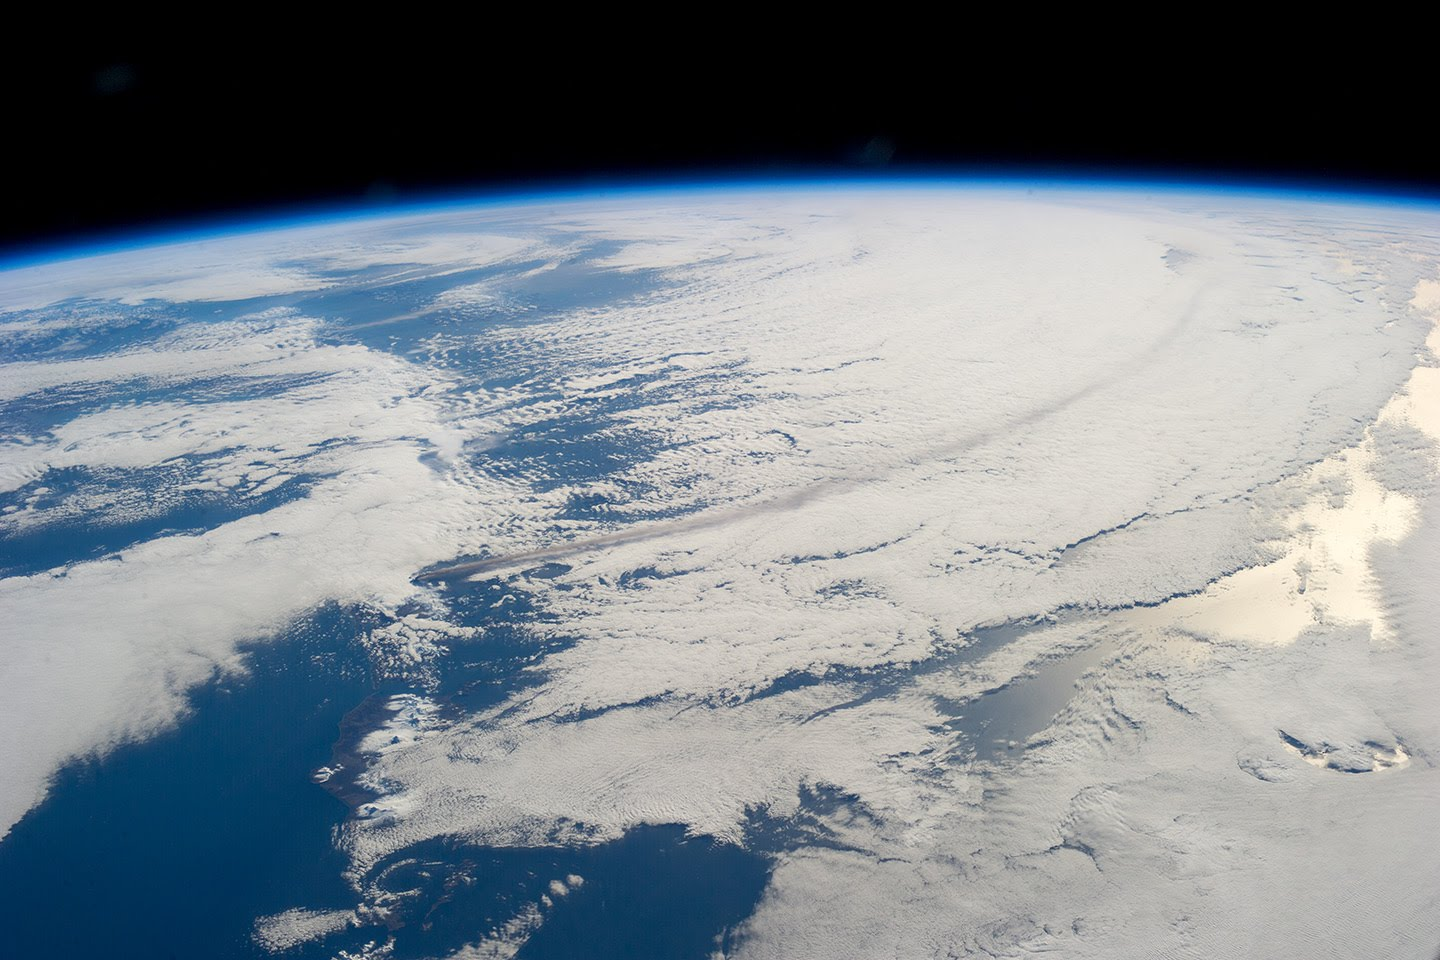 Live Feed of the view of Earth from the International Space Station